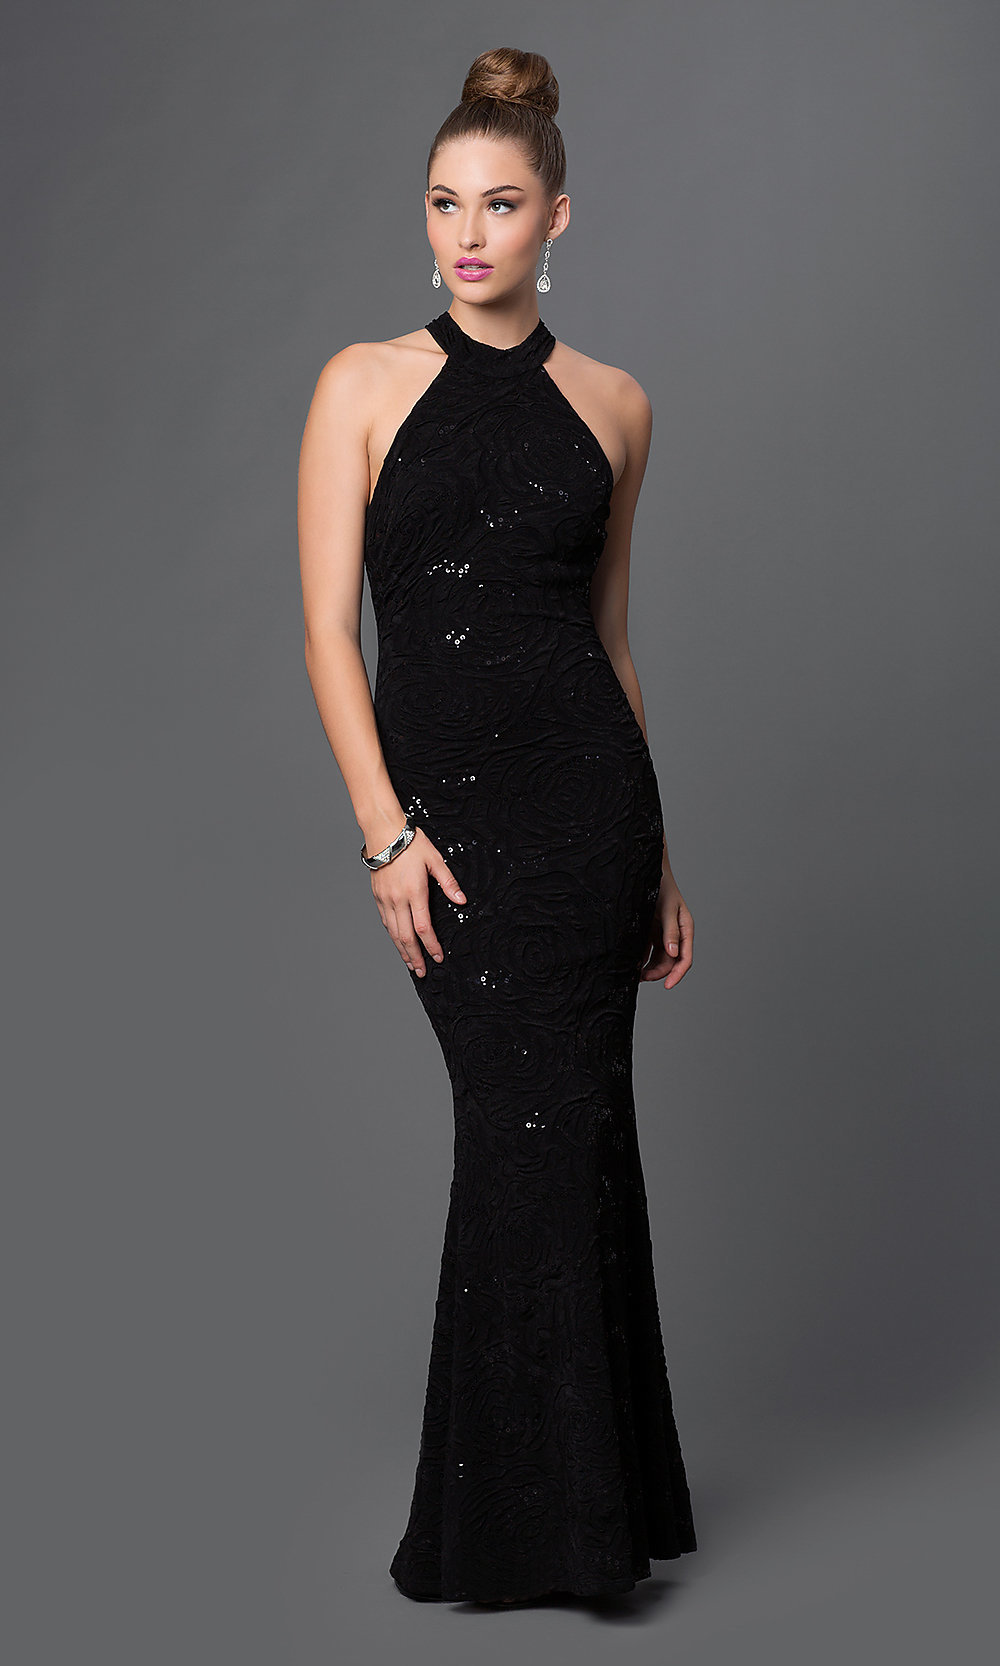 Black dress for prom night - Hover To Zoom